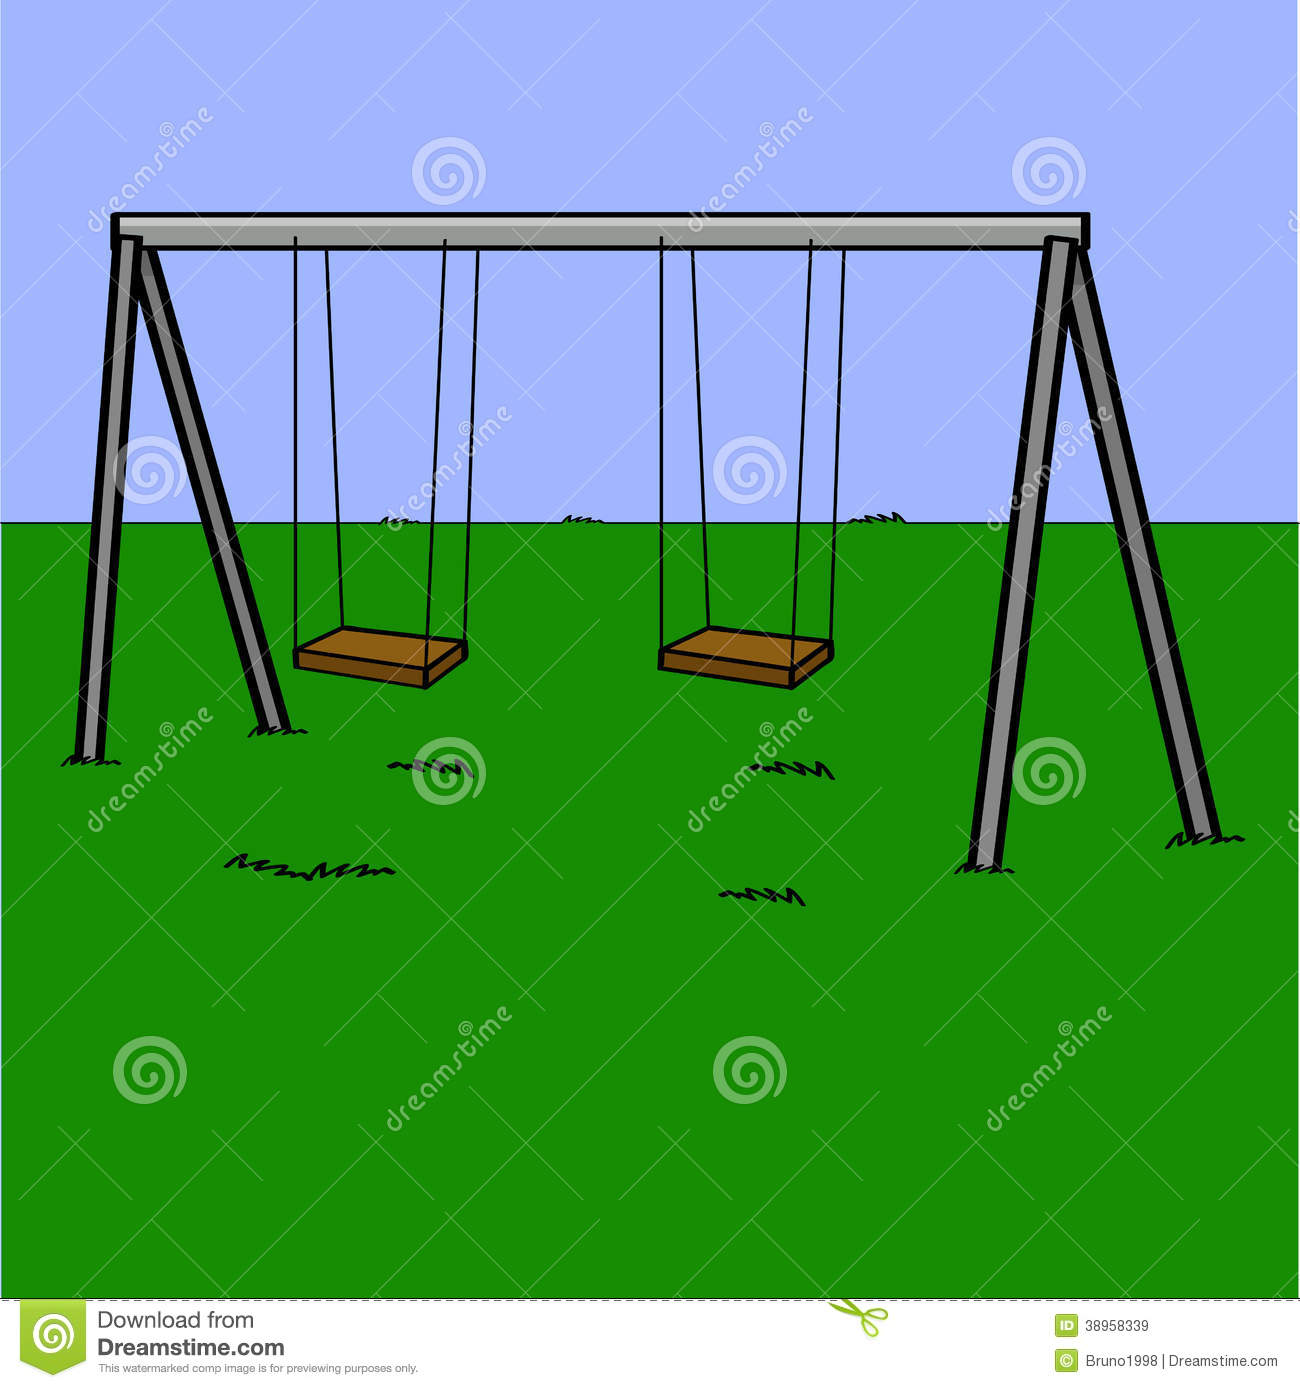 Playground Swings Stock Vector - Image: 38958339